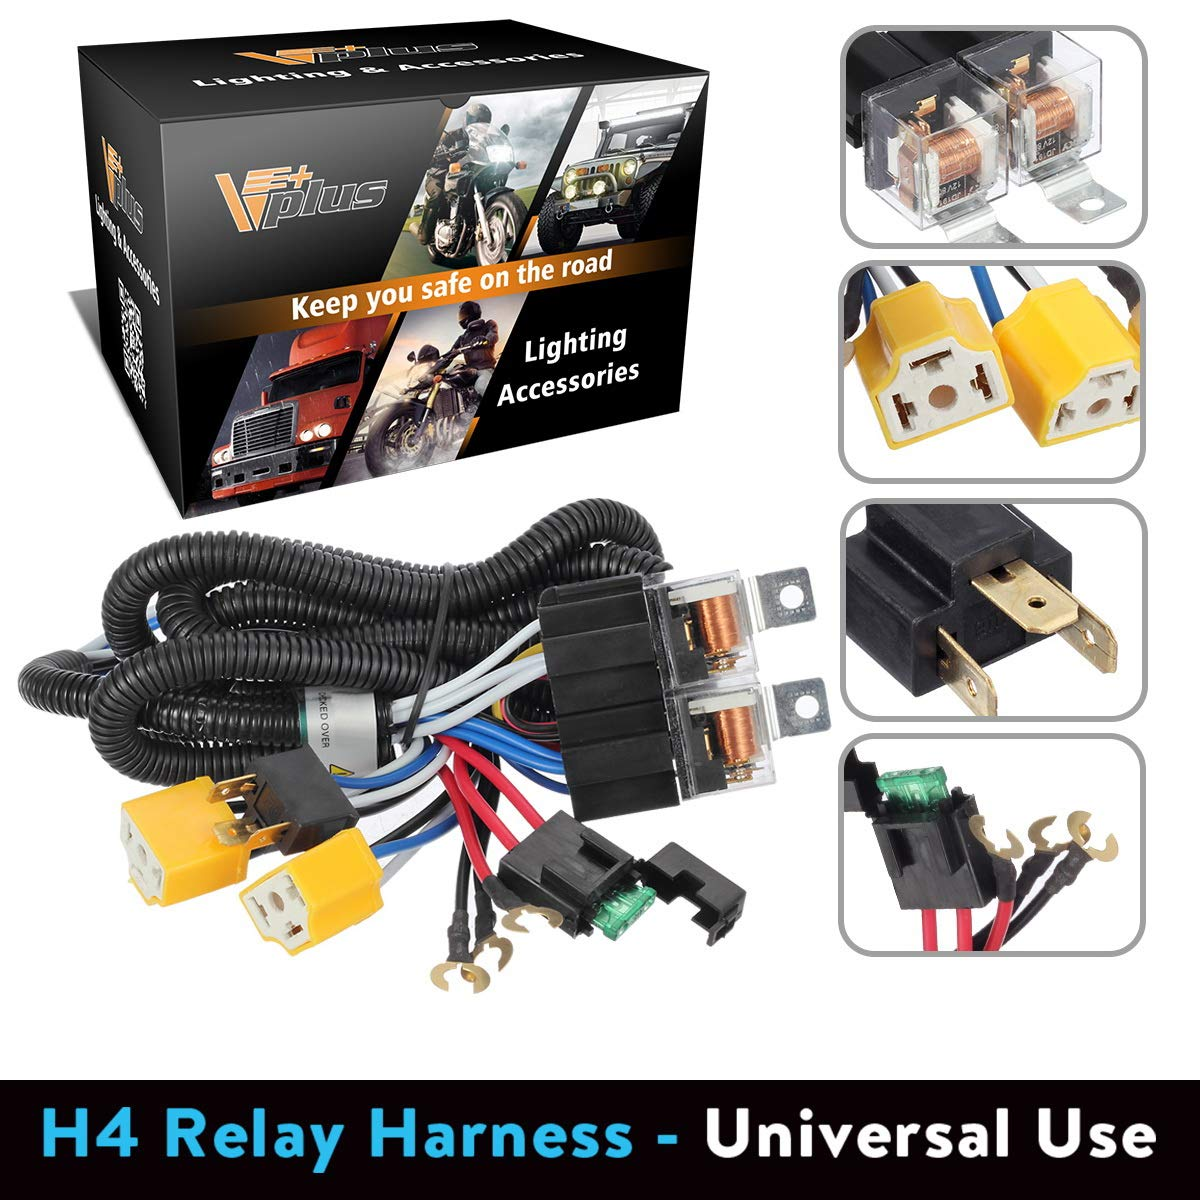 Partsam H4 9003 Headlight Relay Wiring Harness Kit High For Also Connector Diagram Low Beam Heat Ceramic Socket Plugs Hid Conversion Compatible With Toyota Pickup